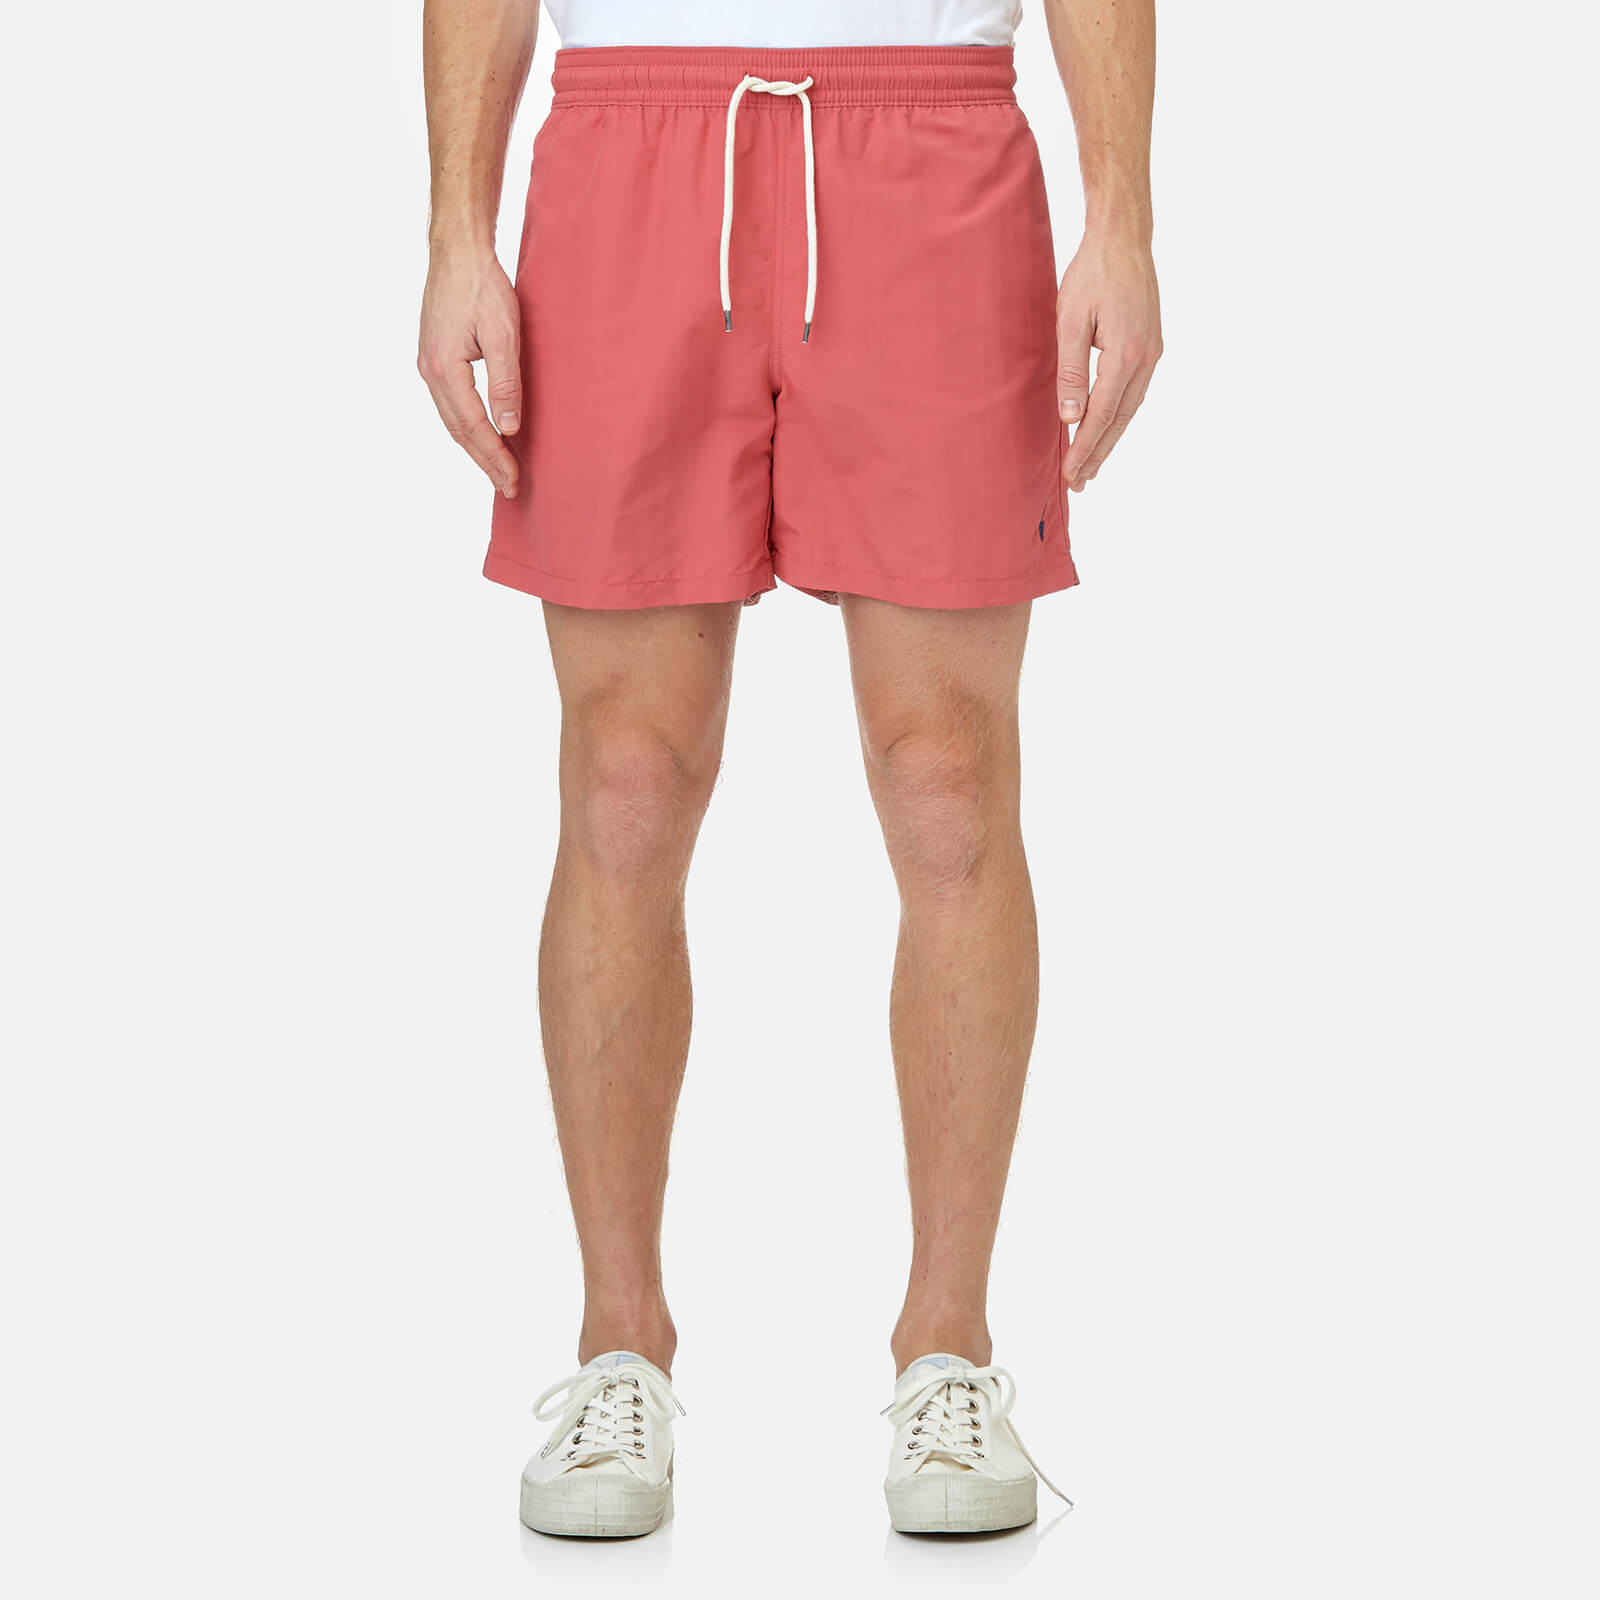 a10ee540b4 Polo Ralph Lauren Men's Traveler Swim Shorts - Hyannis Red - Free UK  Delivery over £50